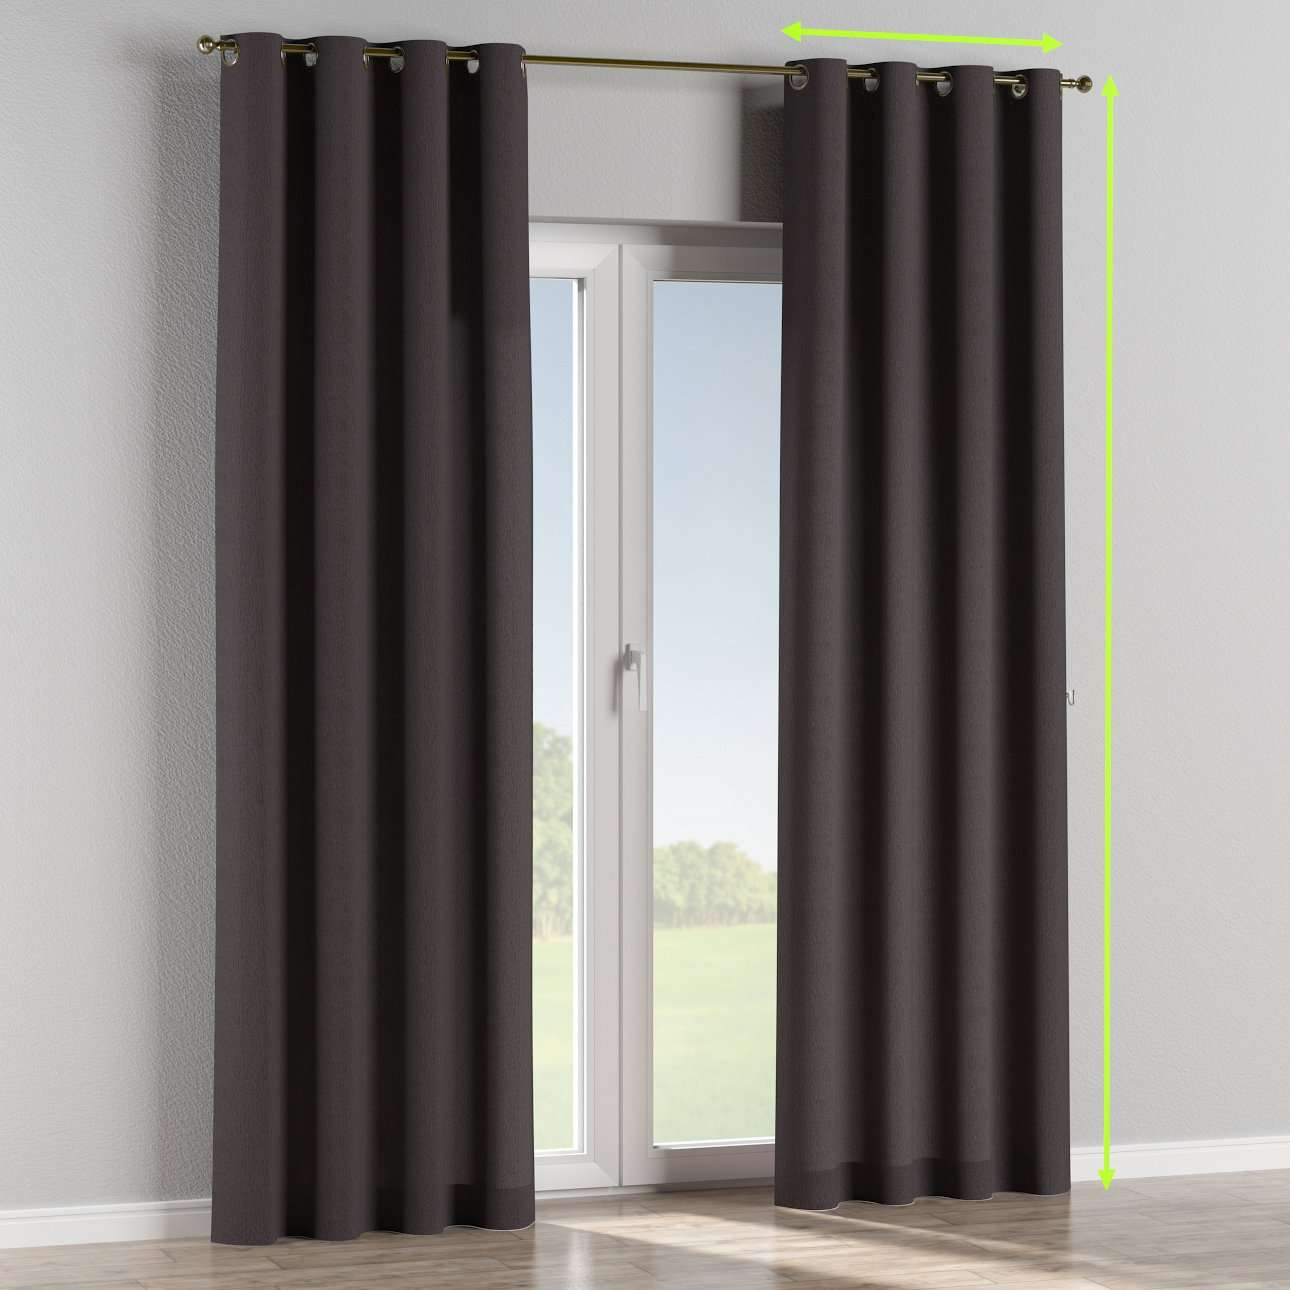 Eyelet lined curtains in collection Chenille, fabric: 702-20